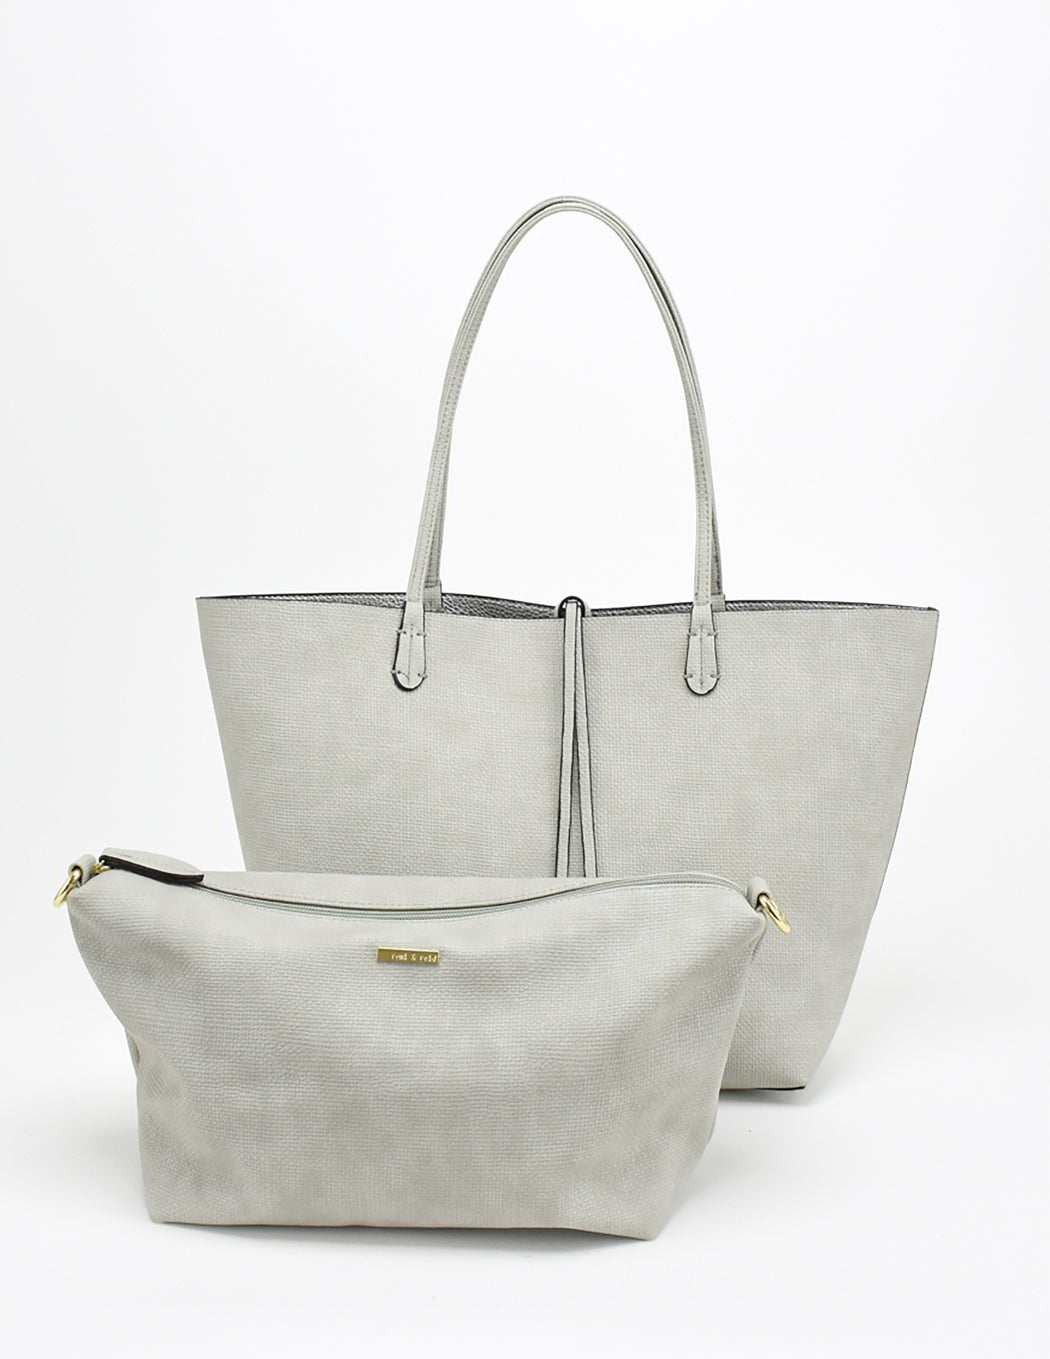 DEPARTURE TOTE LINEN TEXTURE LIGHT GREY/SILVER